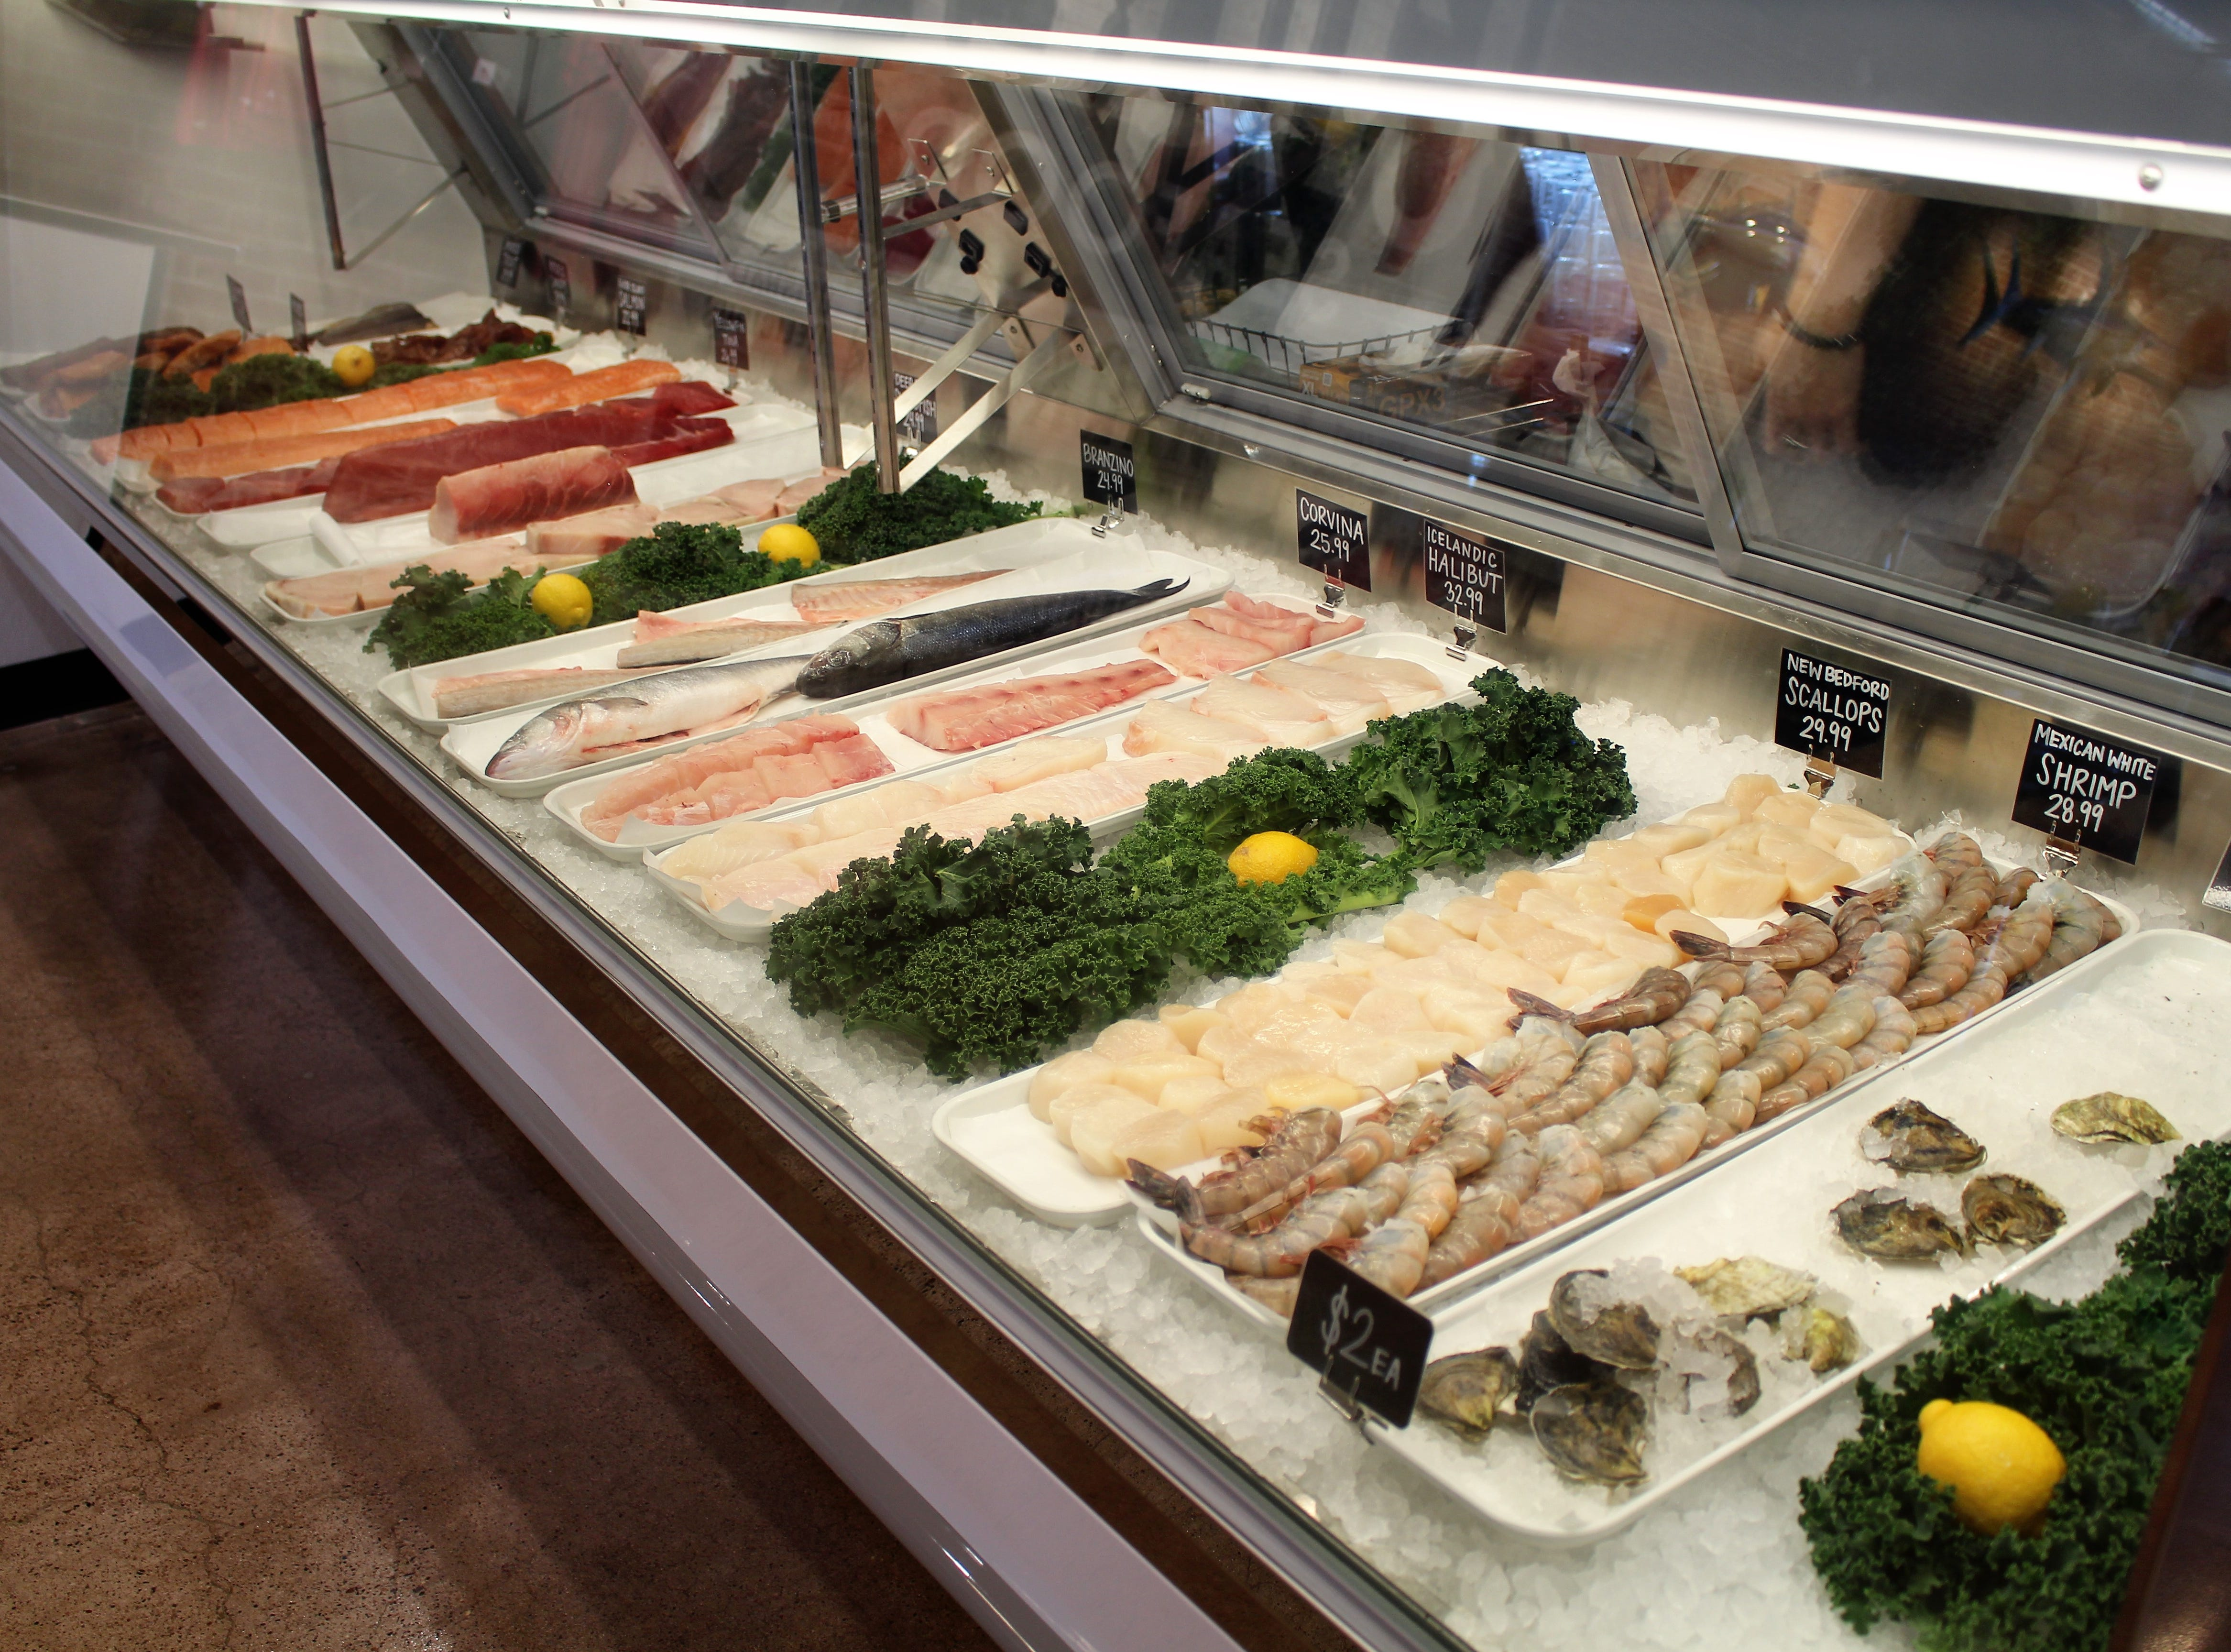 Chula Seafood at Uptown Plaza in Phoenix is both a casual seafood restaurant and a market offering fresh fish, including selections caught by the company's namesake boat the FV Chula in California.